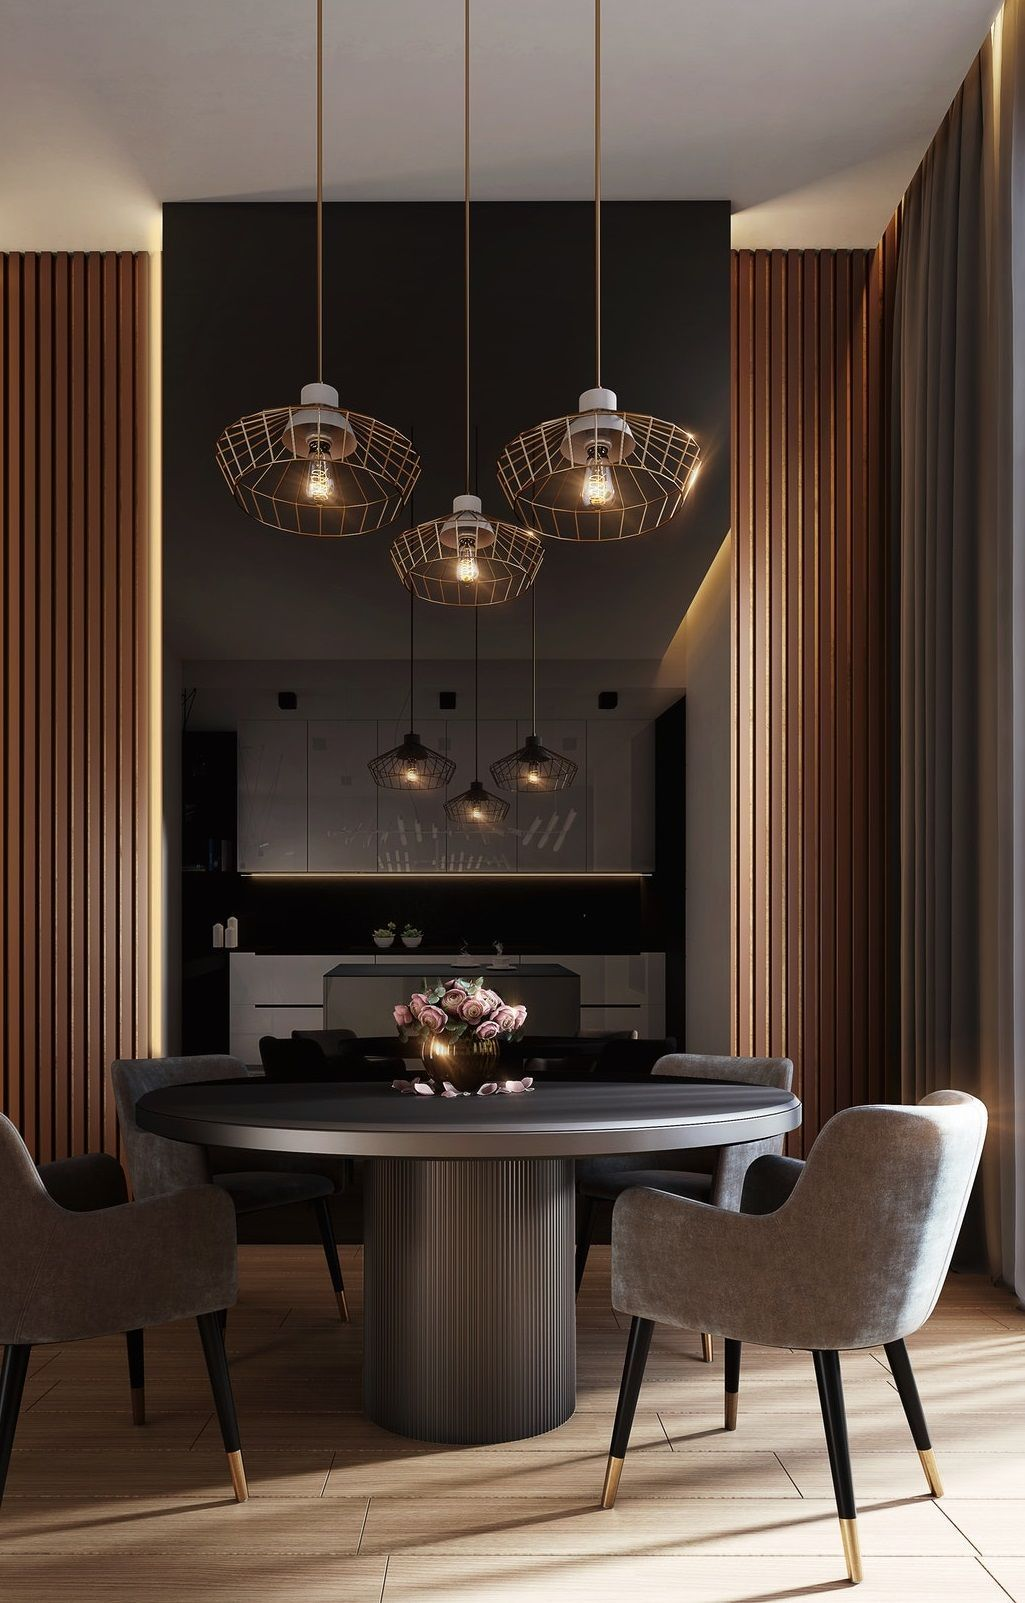 5 Dining Room Designs To Inspire You To Remodel Your Home Grey Dining Tables Home Interior Design House Interior